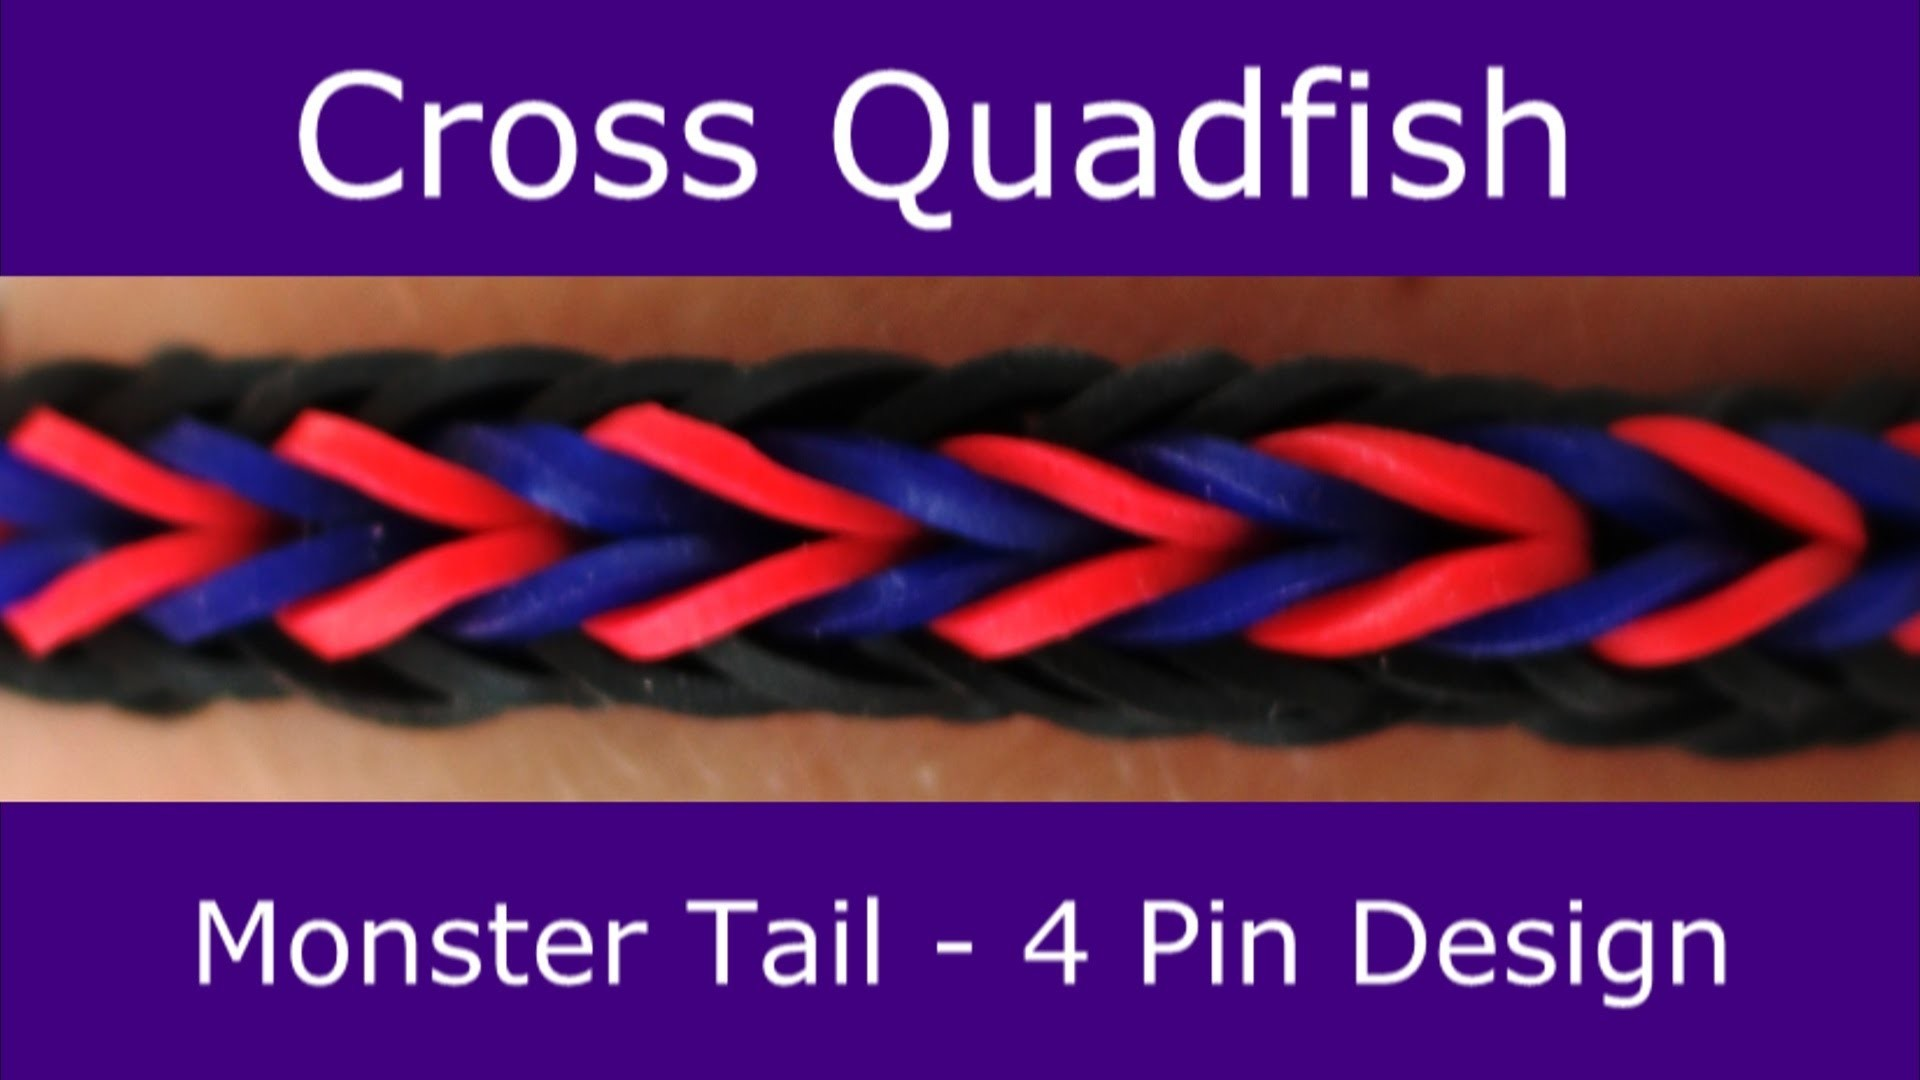 Monster Tail®  Cross Quadfish Bracelet by Rainbow Loom